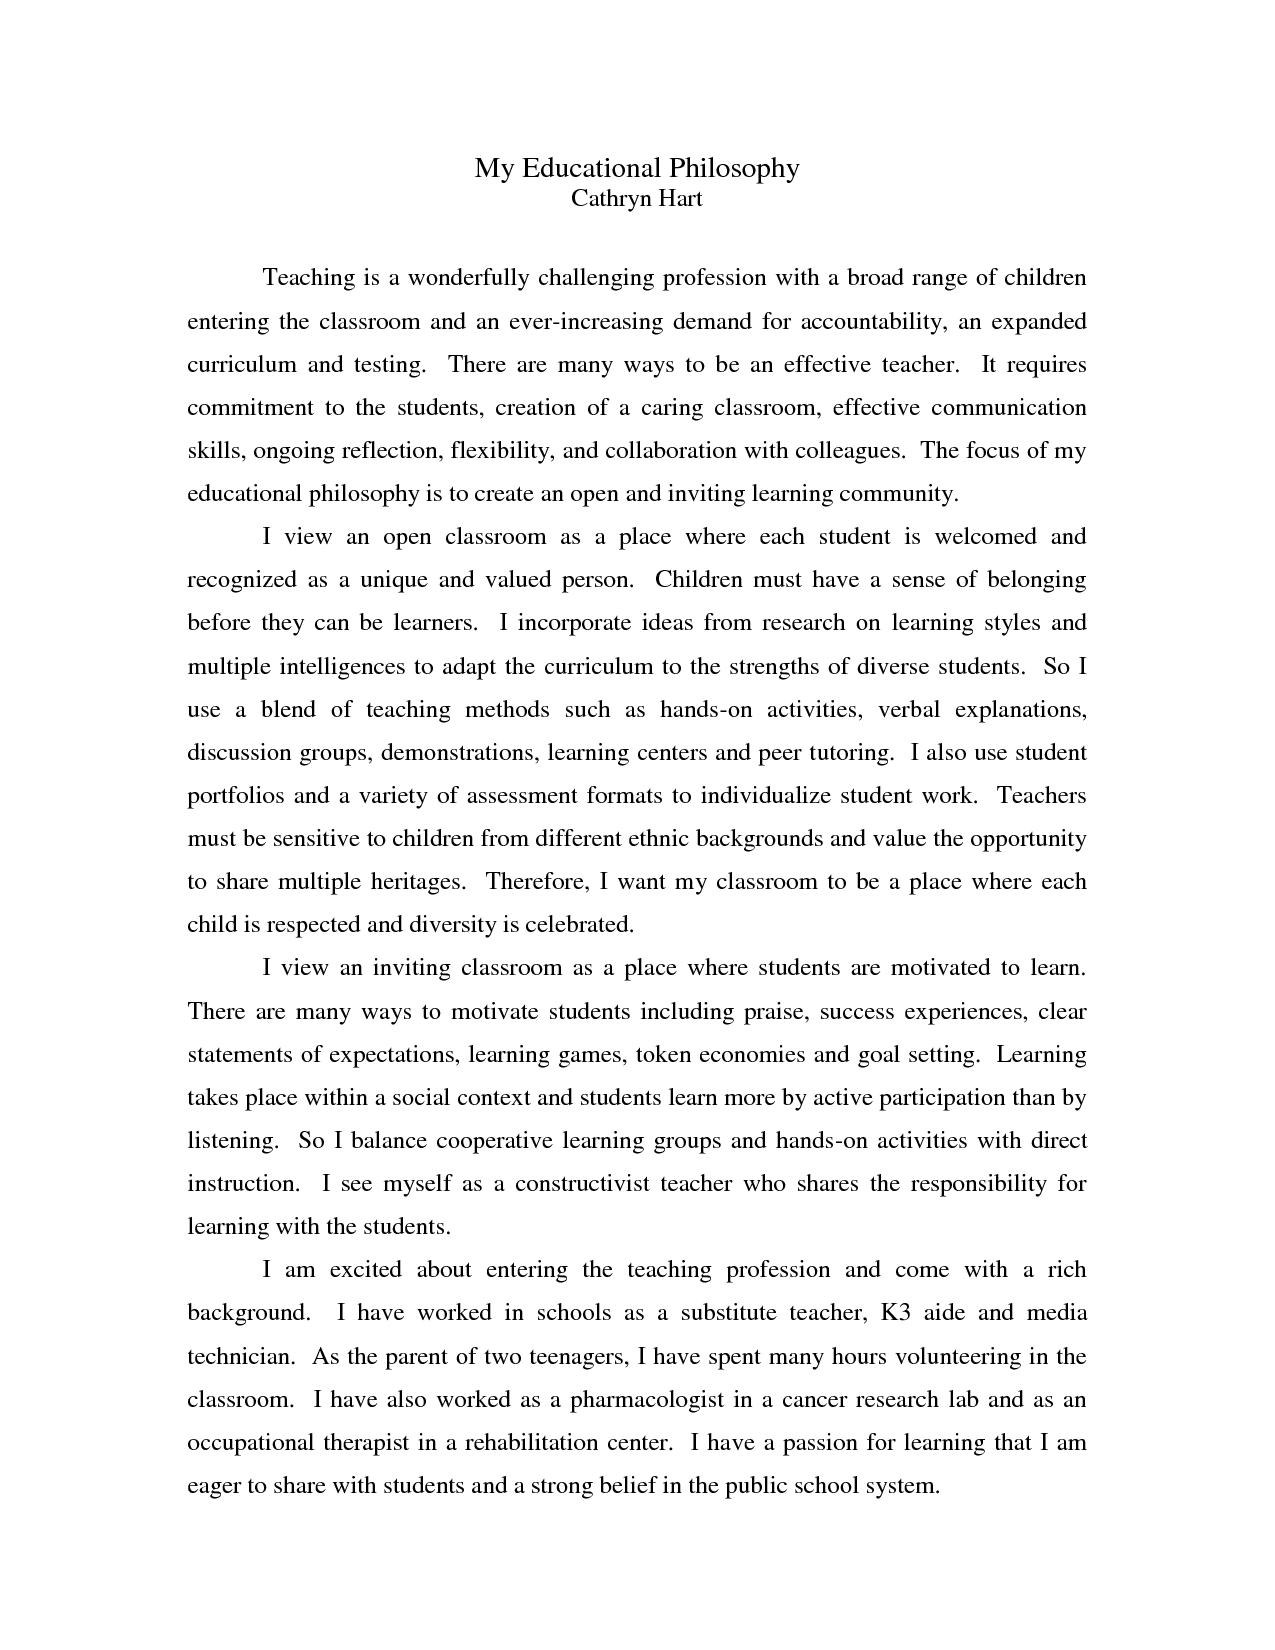 teaching a priceless profession essay Read this full essay on teaching is a profession of passion  1007 words - 4  pages teaching: a priceless profession what if there was a career that not only.